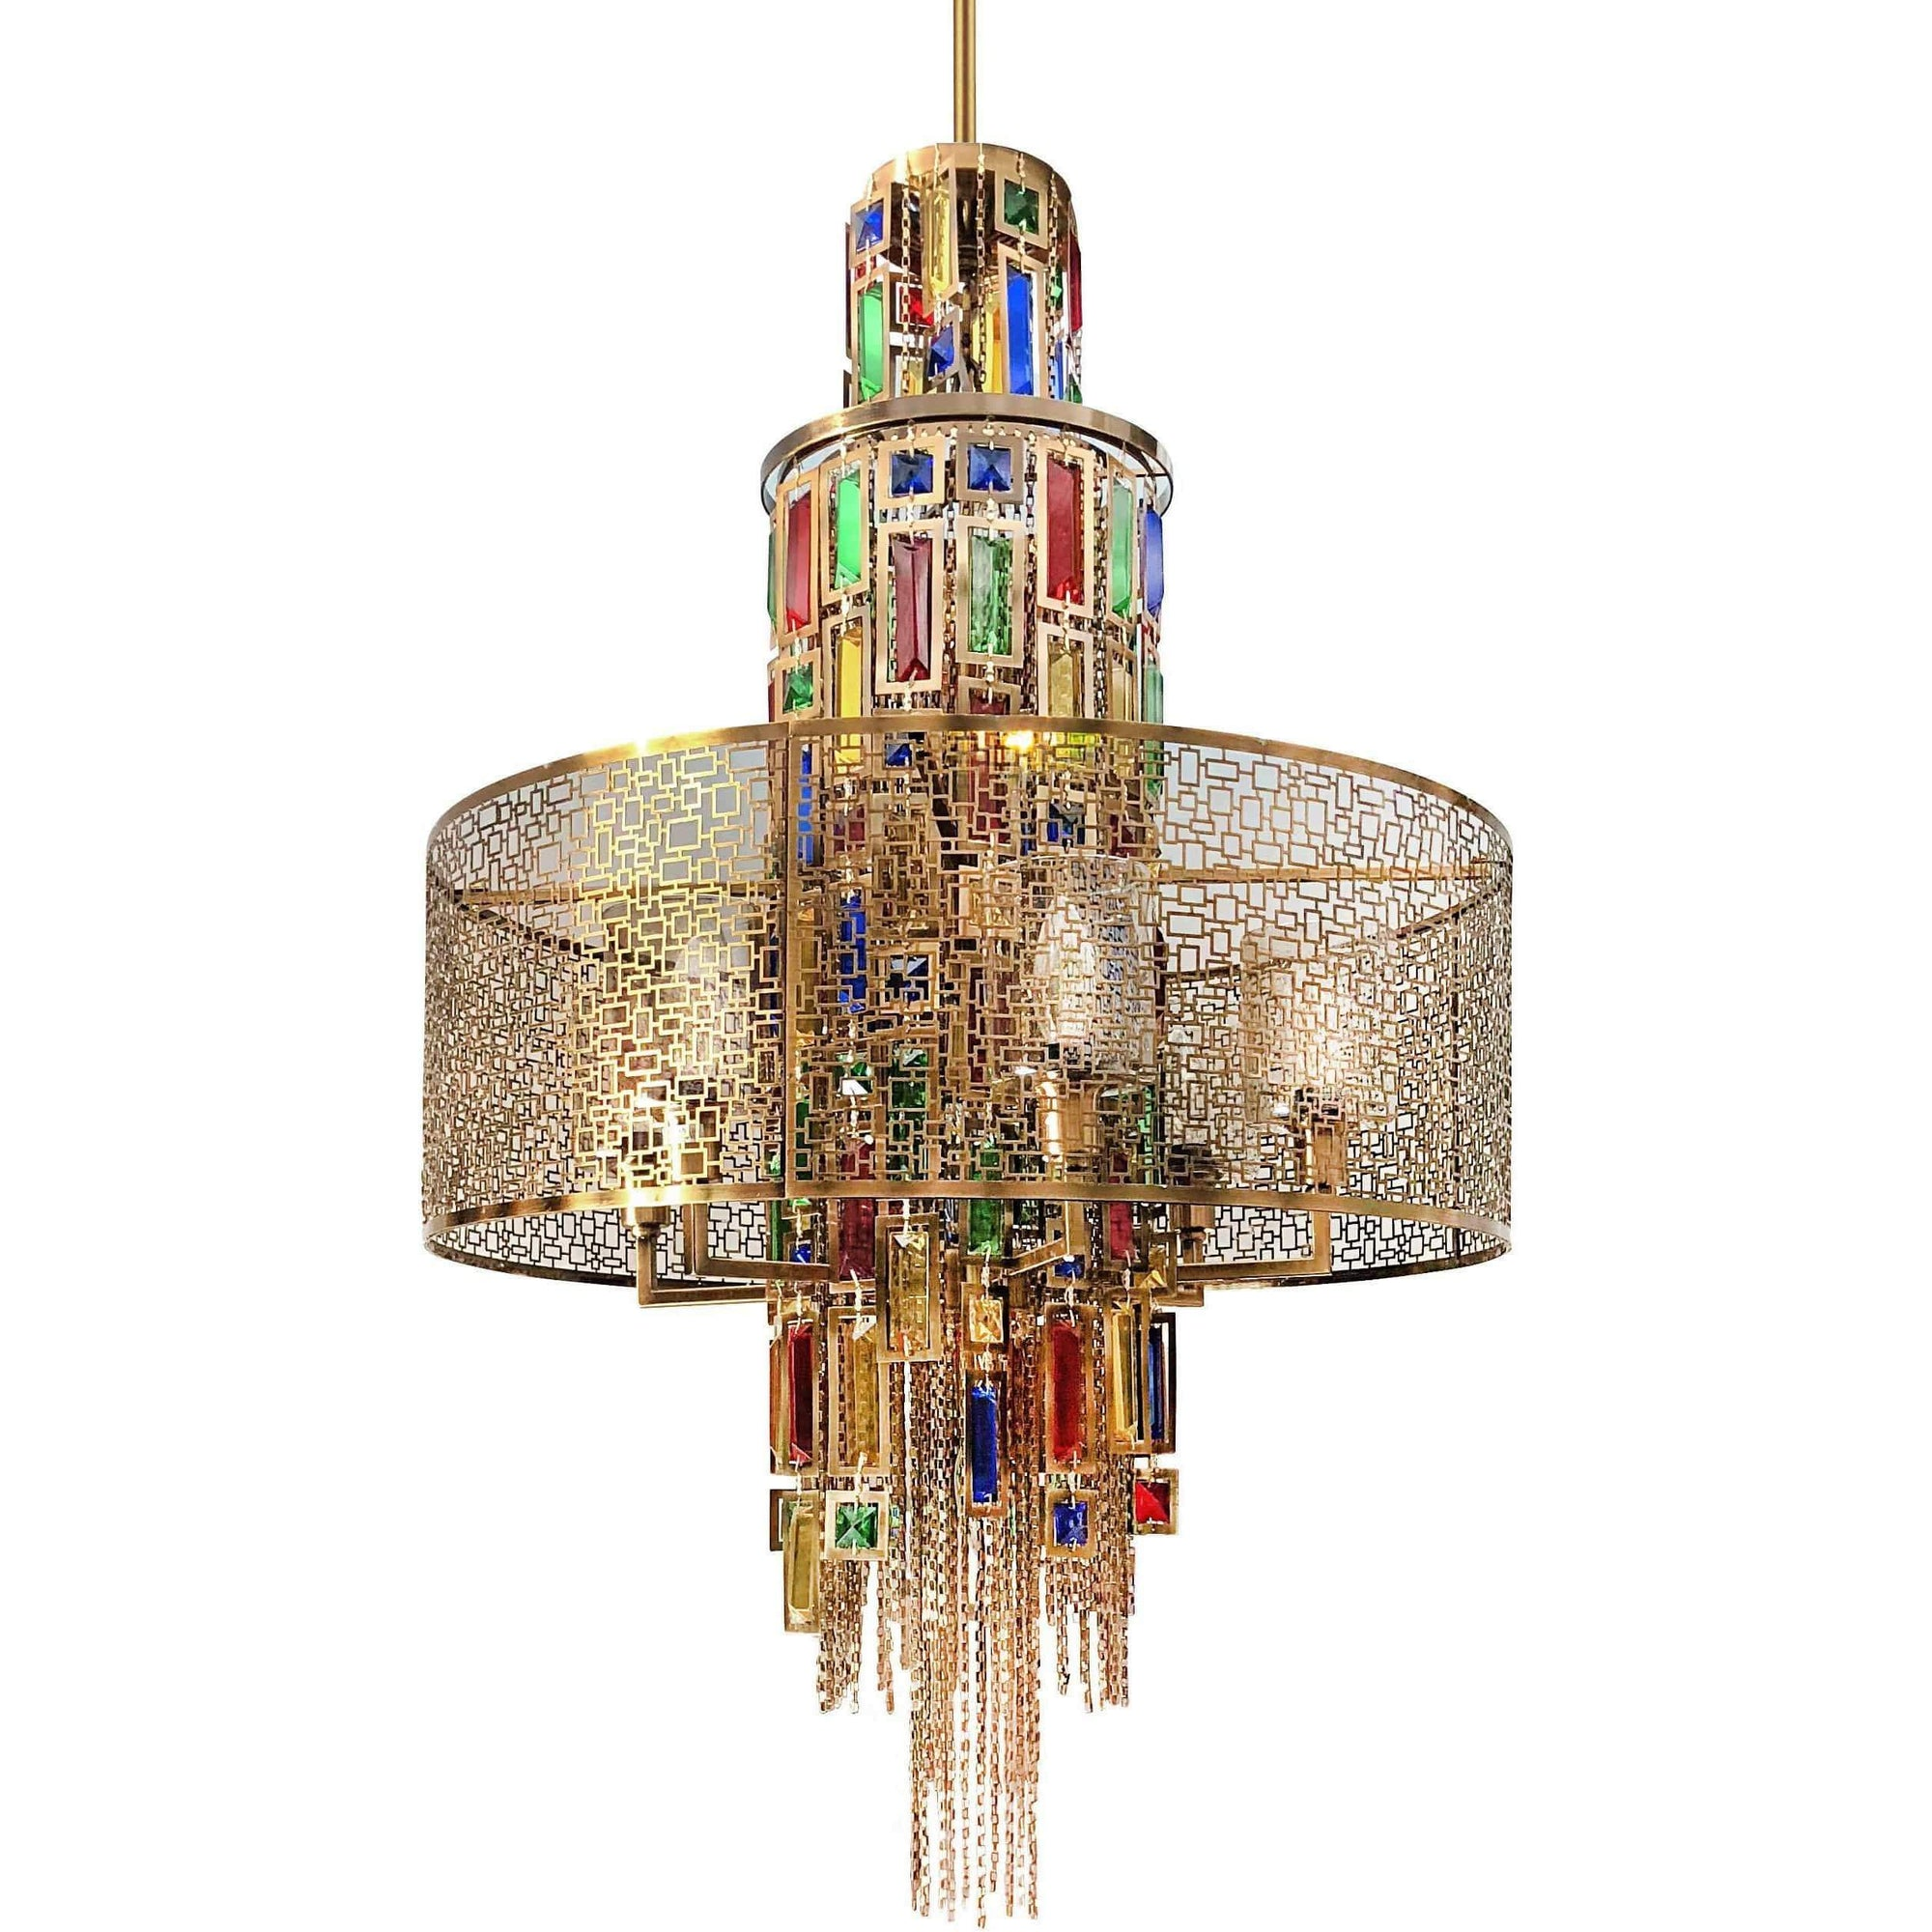 CWI Lighting Chandeliers Gold / K9 Multicoloured Stained 11 Light Drum Shade Chandelier with Gold finish by CWI Lighting 5647P24G